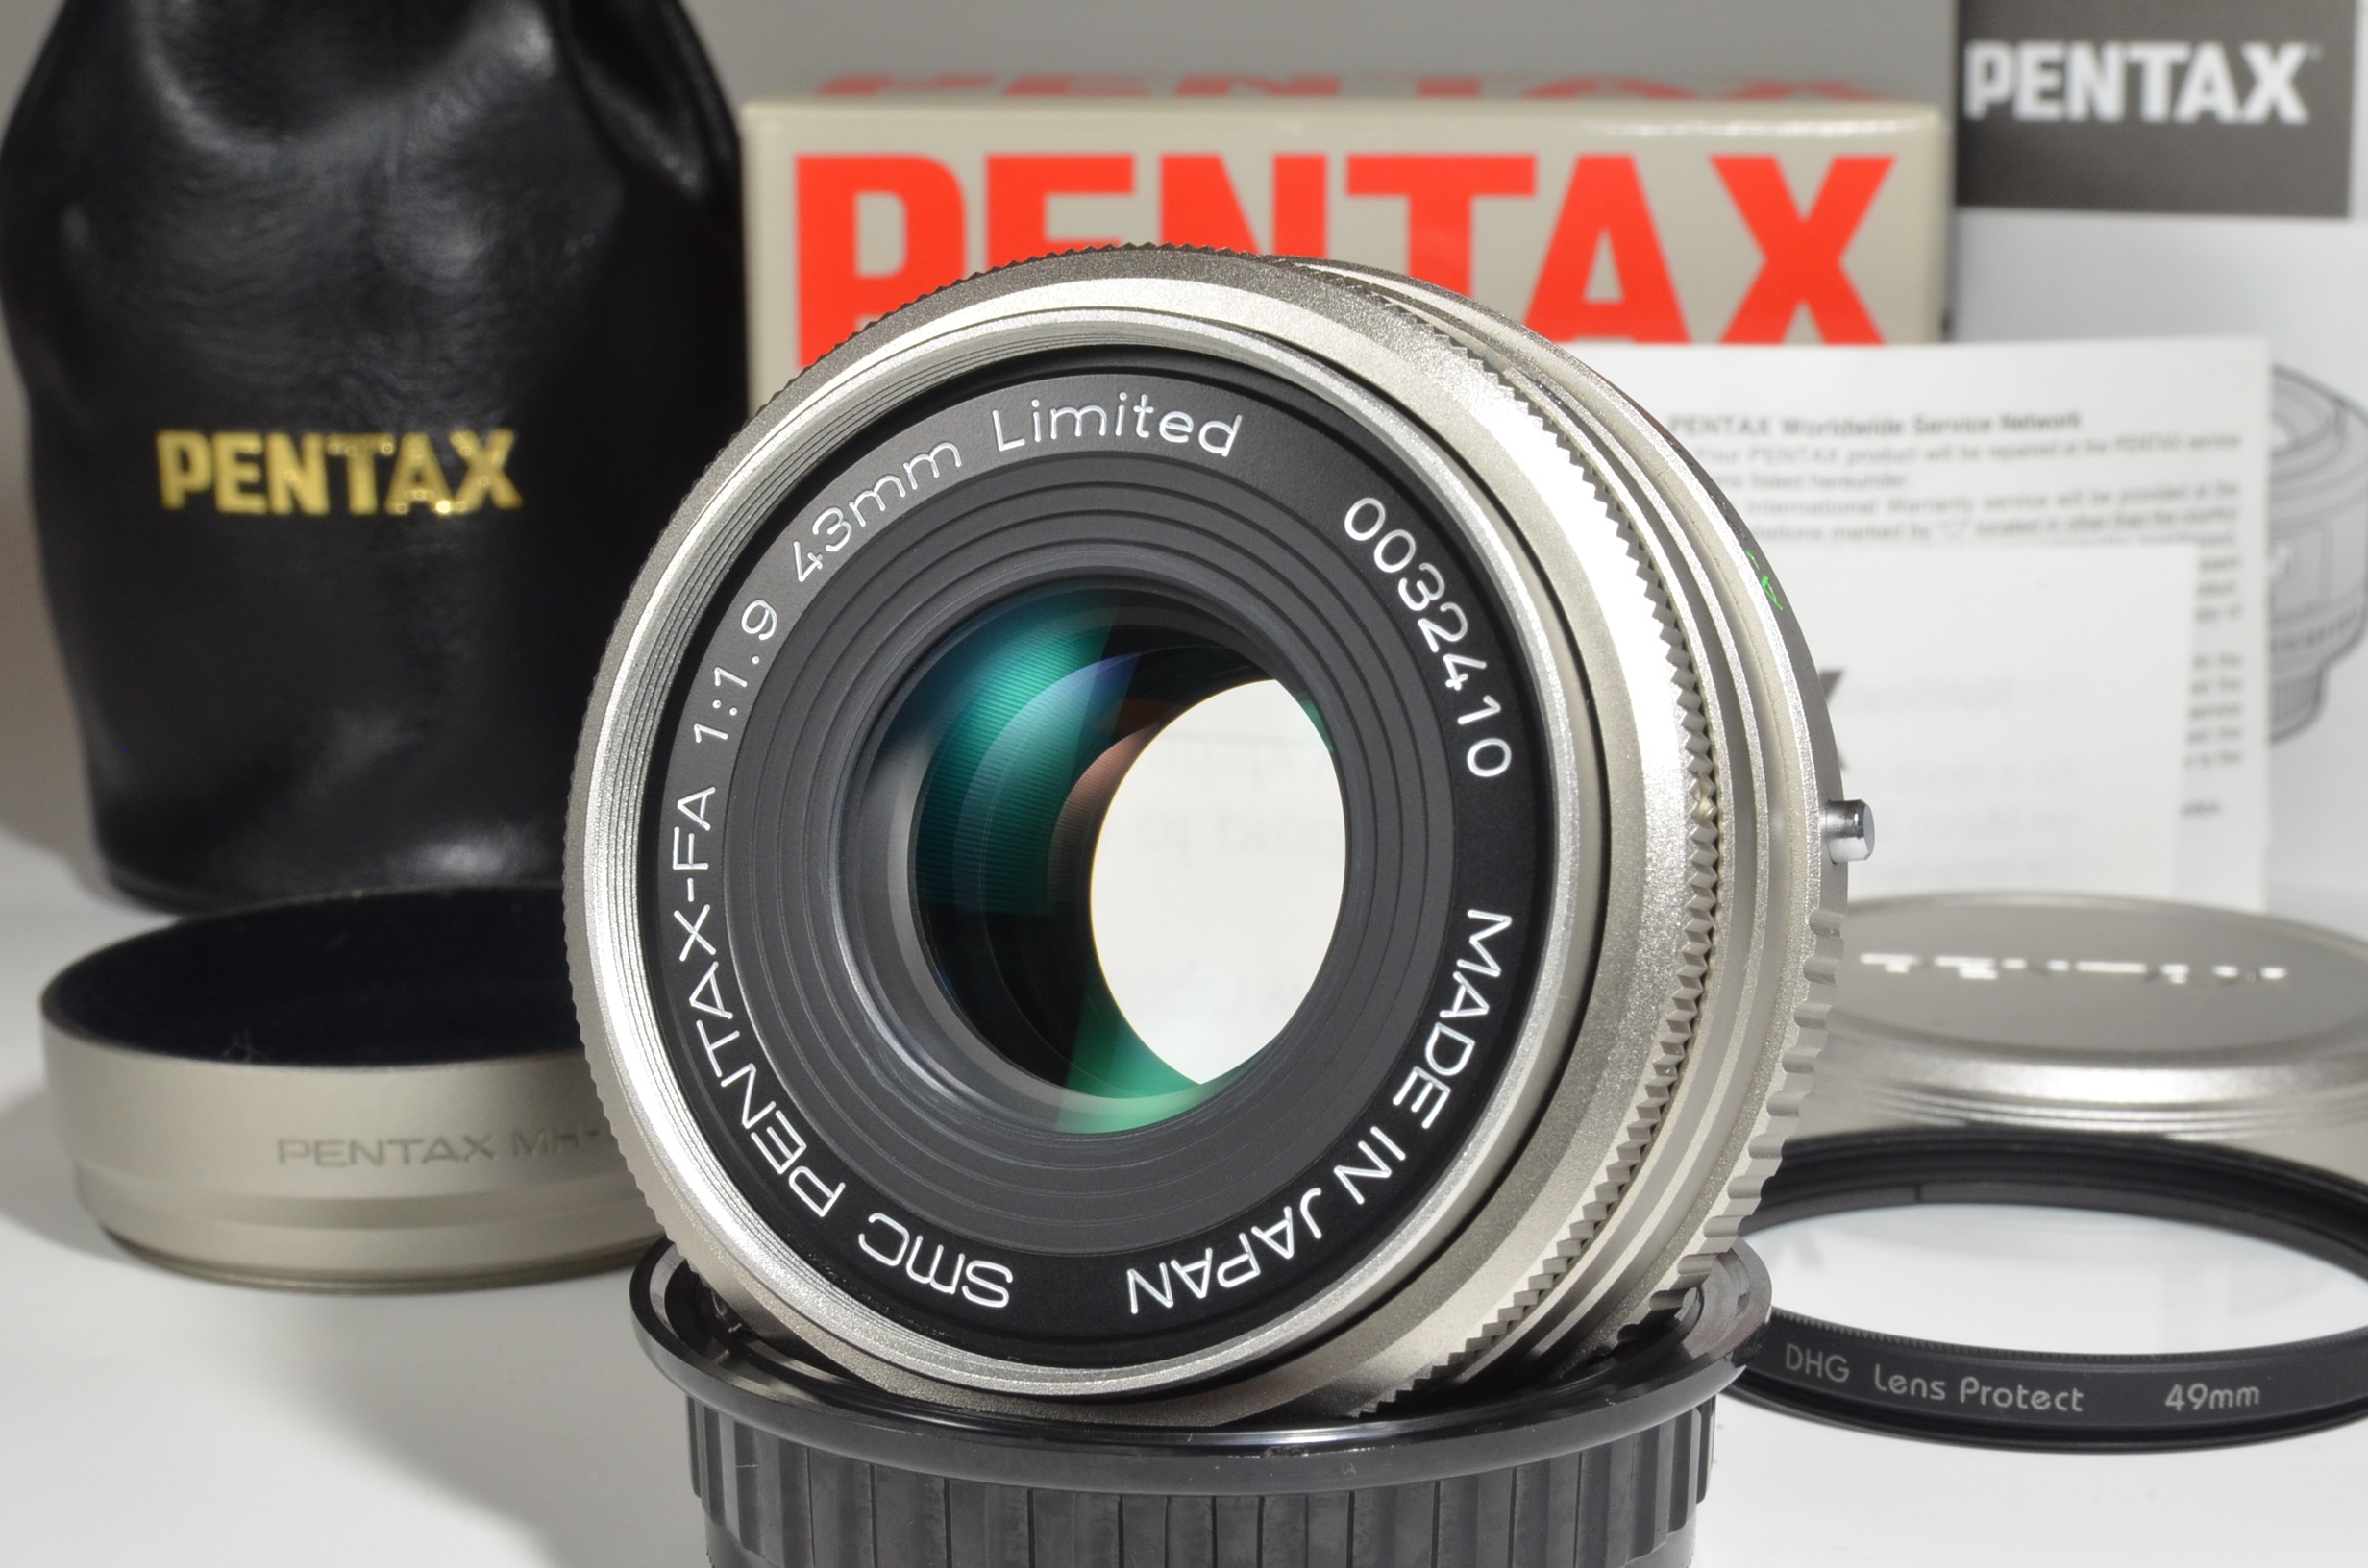 pentax smc fa 43mm f1.9 silver limited lens made in japan rare!